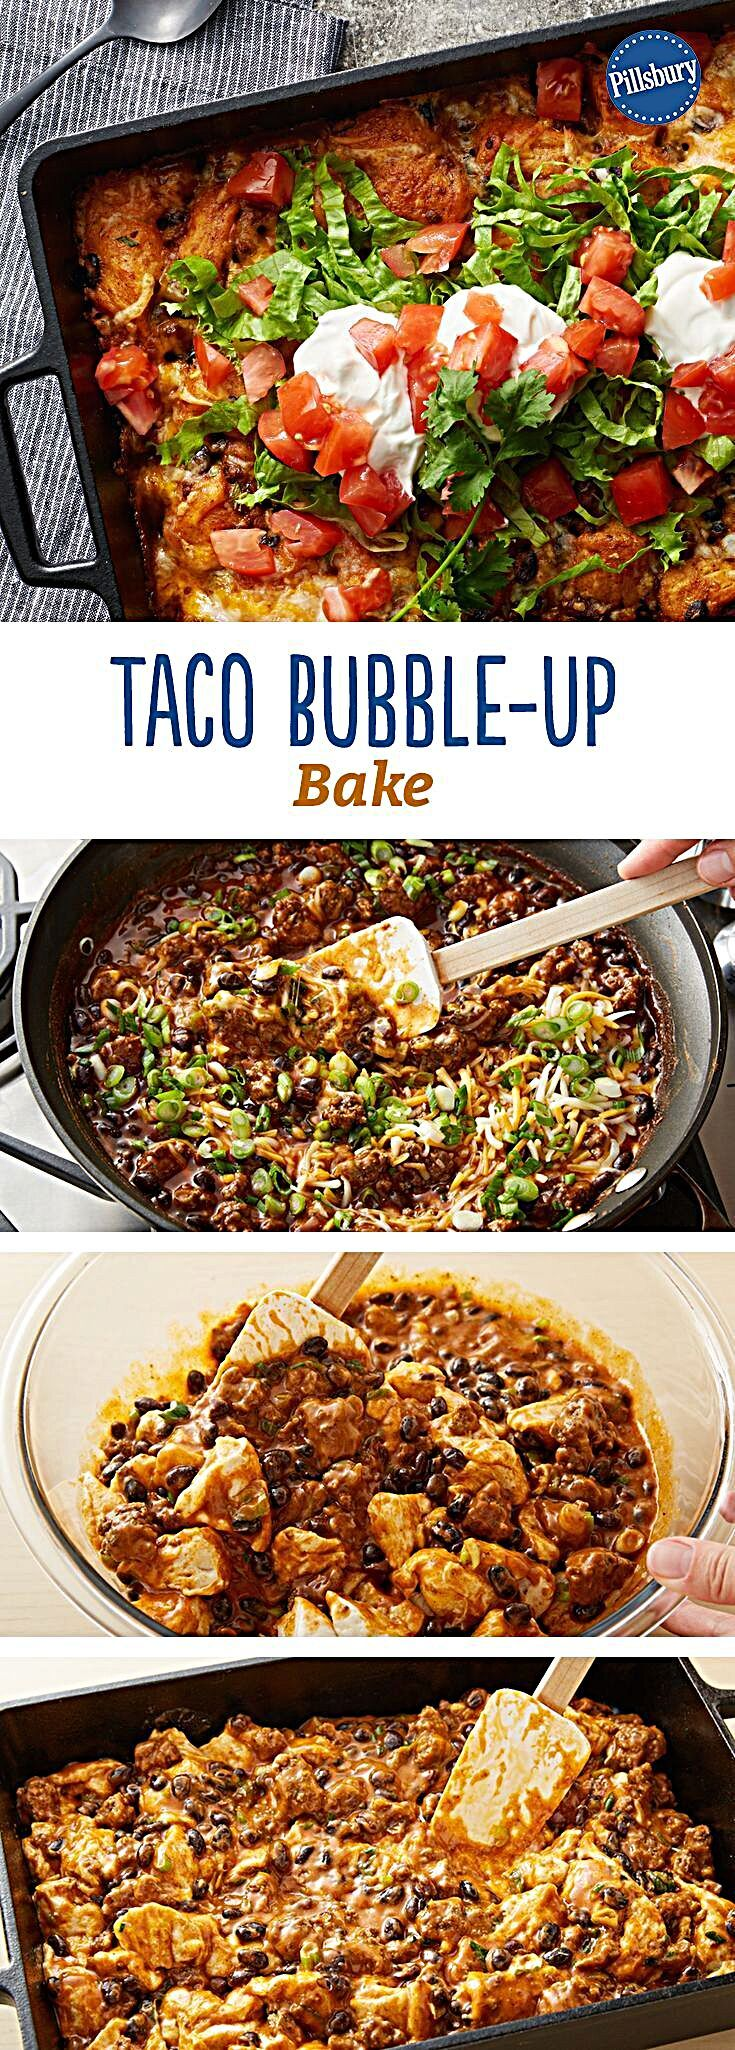 Try this easy-prep Mexican casserole with bubble-up biscuits. Add your favorite fresh toppings. Taco...